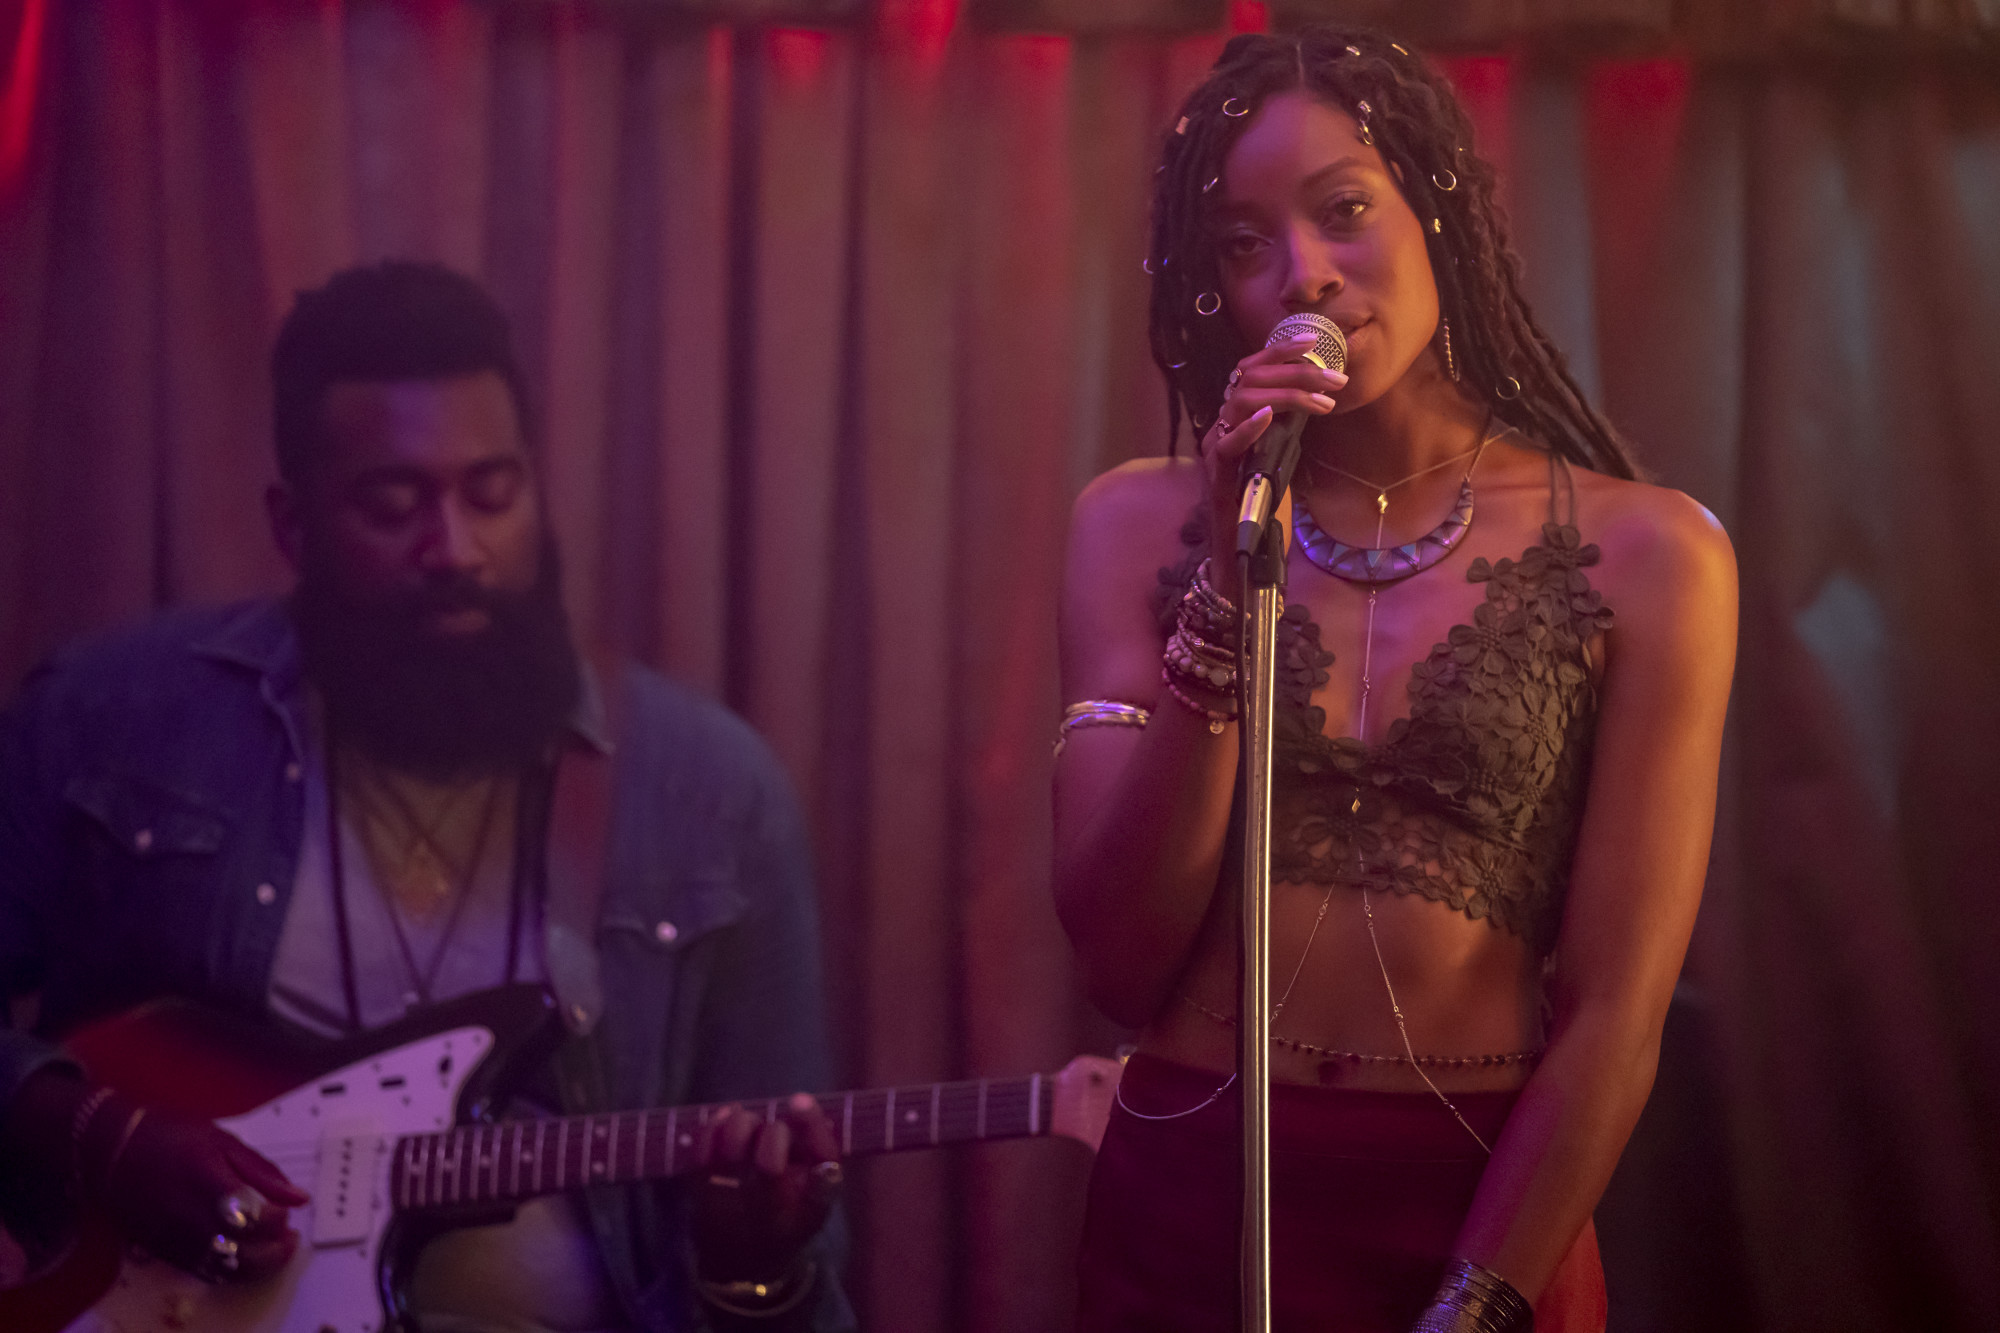 """EMPIRE: L-R: Guest star Kiandra Richardson in the """"What Is Love"""" season premiere episode of EMPIRE airing Tuesday, Sept. 24 (9:00-10:00 PM ET/PT) on FOX. ©2019 Fox Broadcasting Co. All Rights Reserved. CR: Chuck Hodes/FOX."""